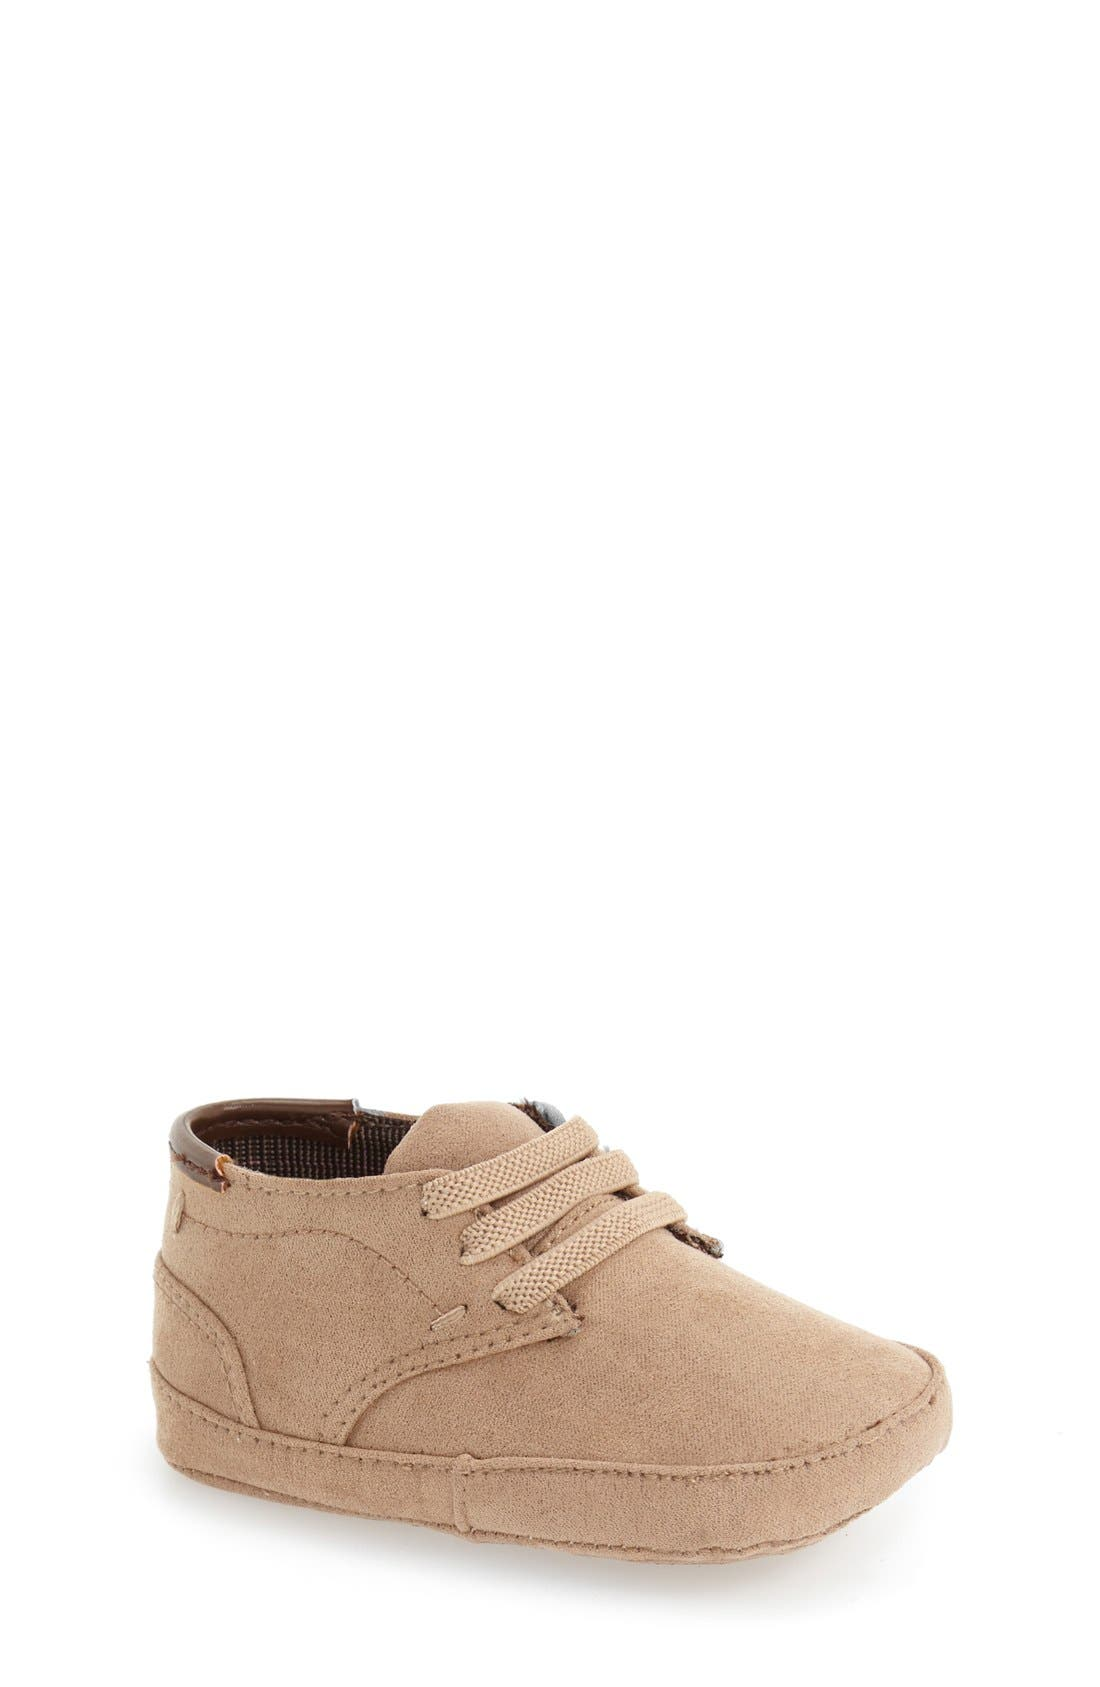 'Real Deal' Crib Shoe,                         Main,                         color, SAND